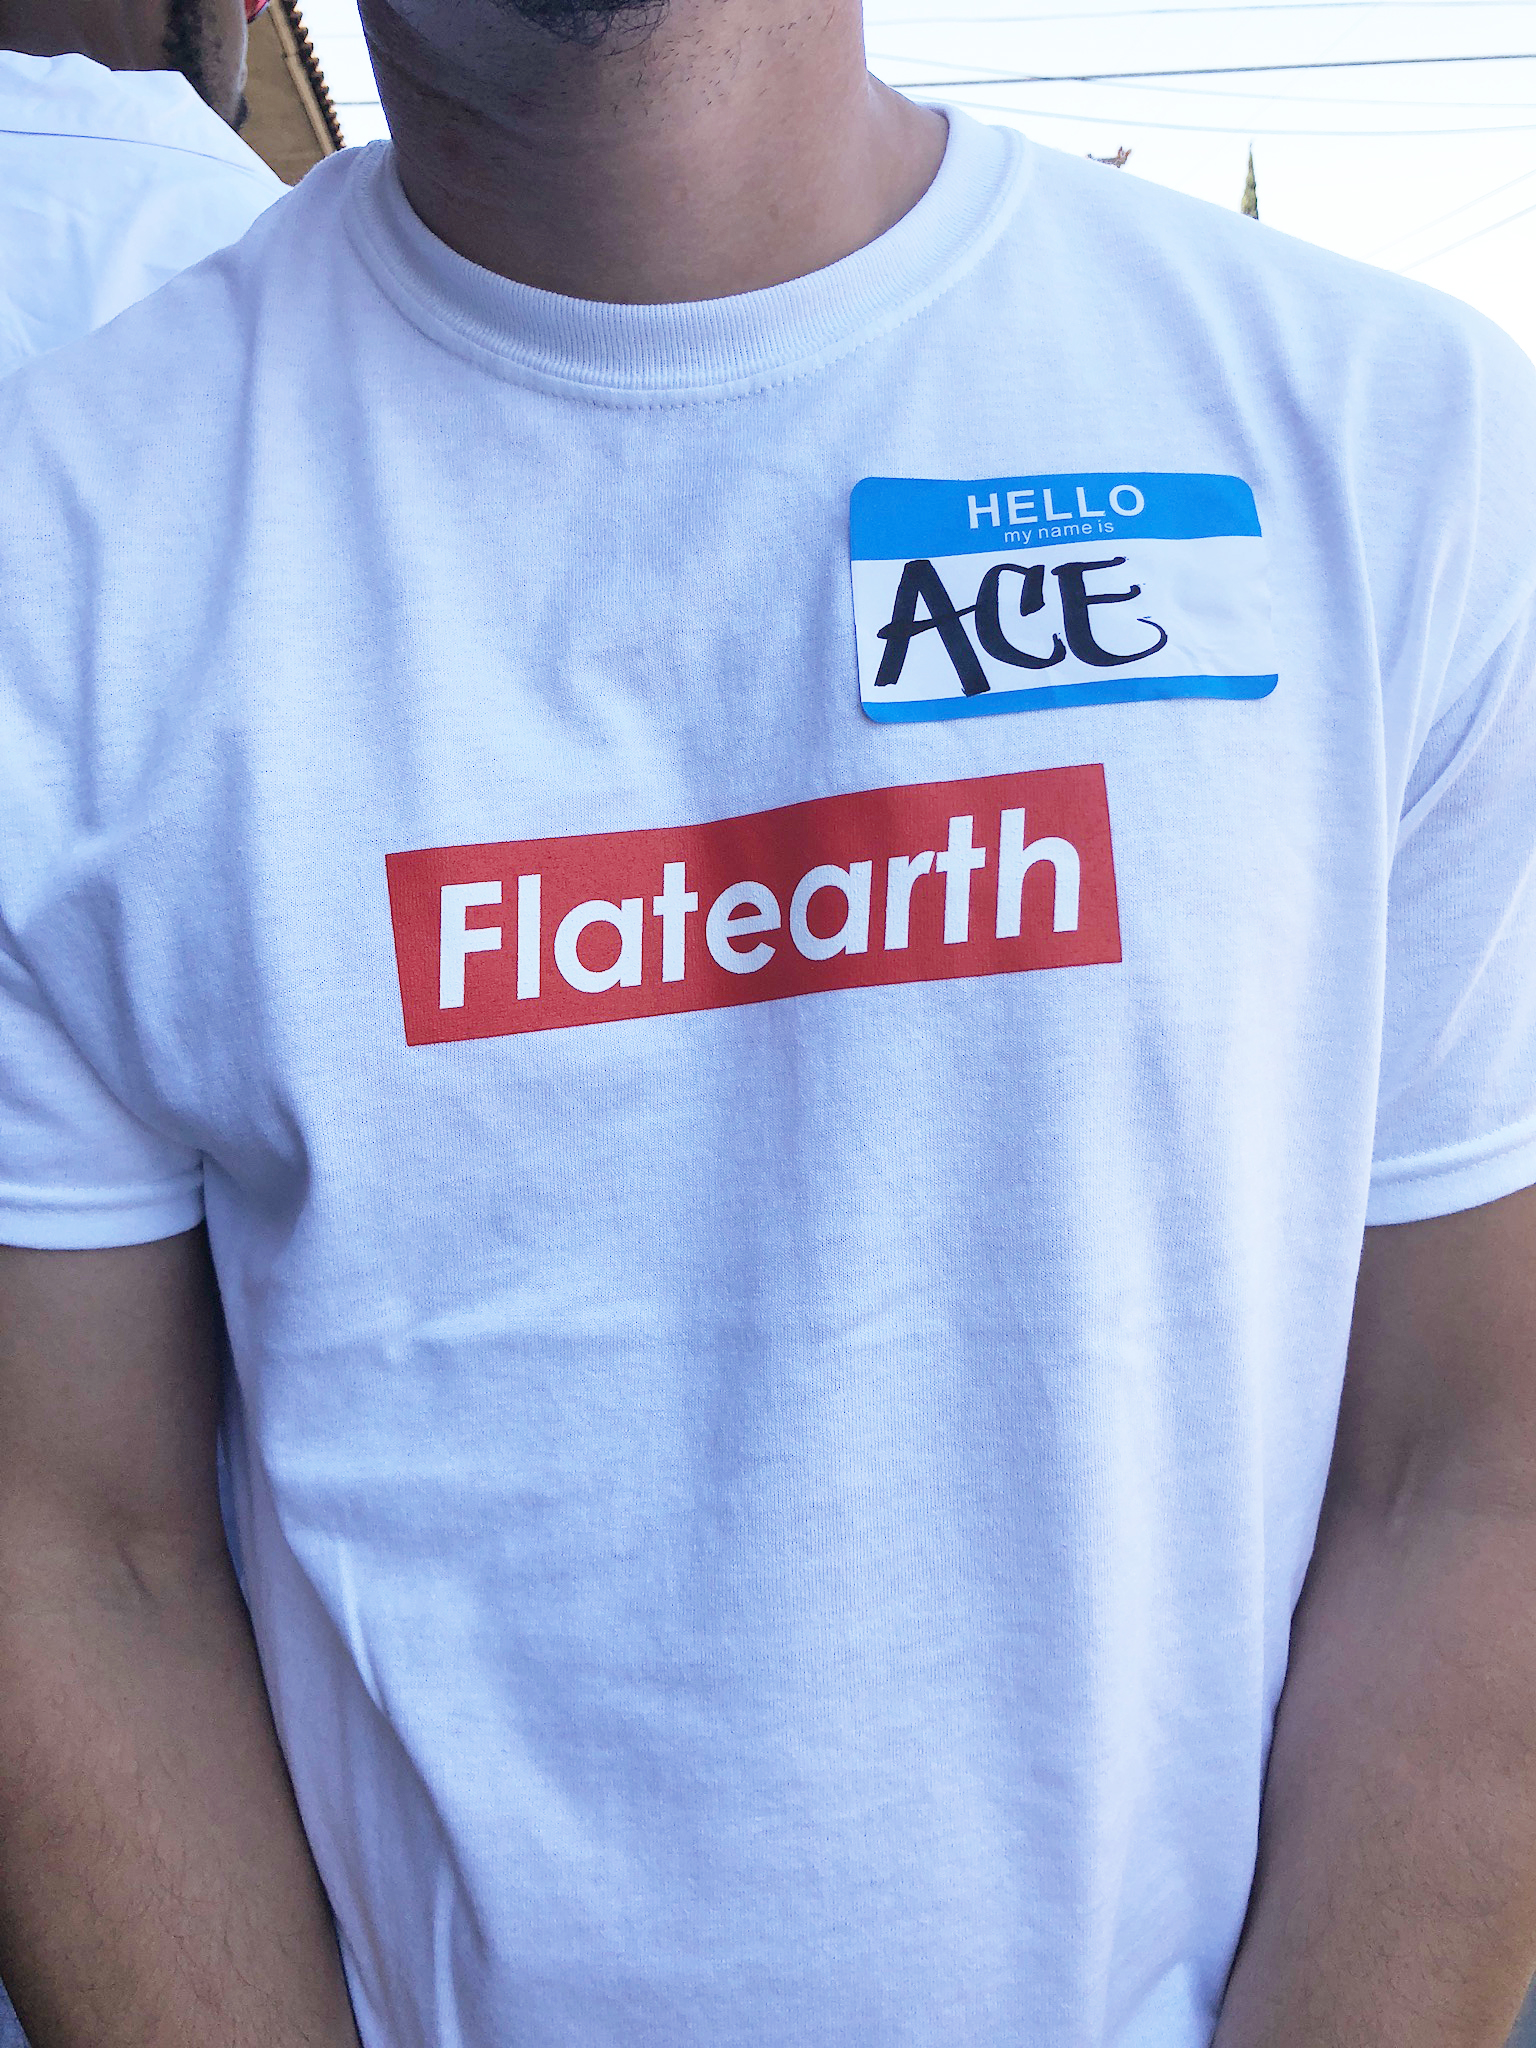 d6351a7bf5780 I Went to a Flat Earth Fashion Show - VICE